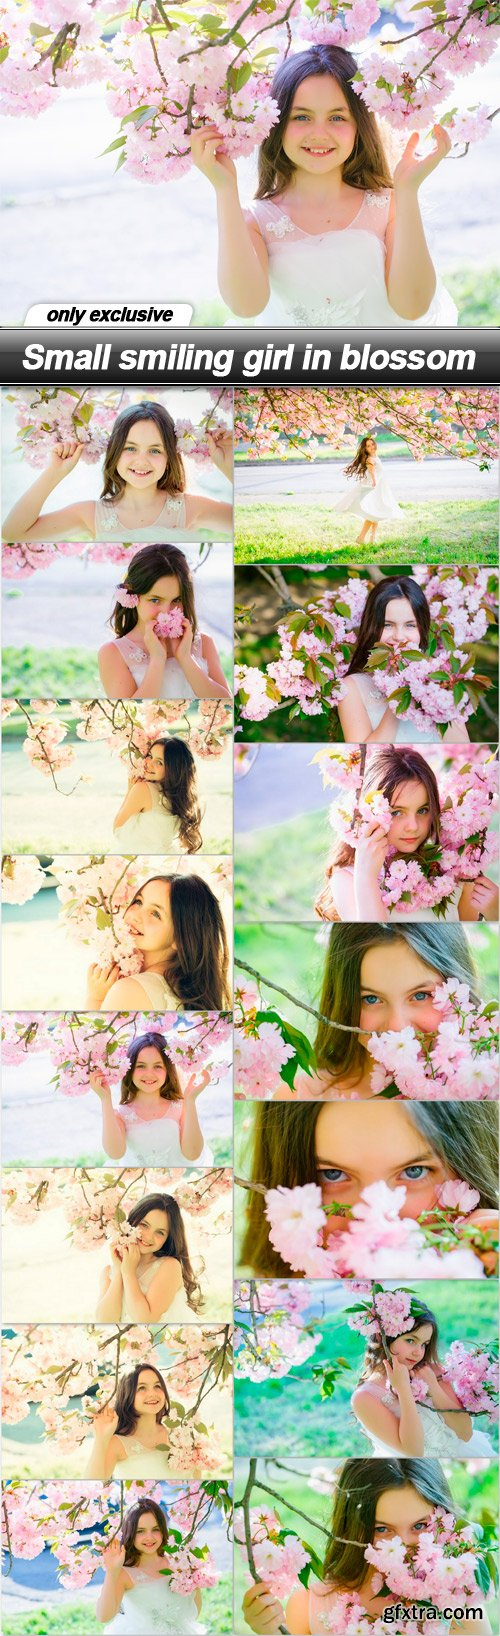 Small smiling girl in blossom - 15 UHQ JPEG